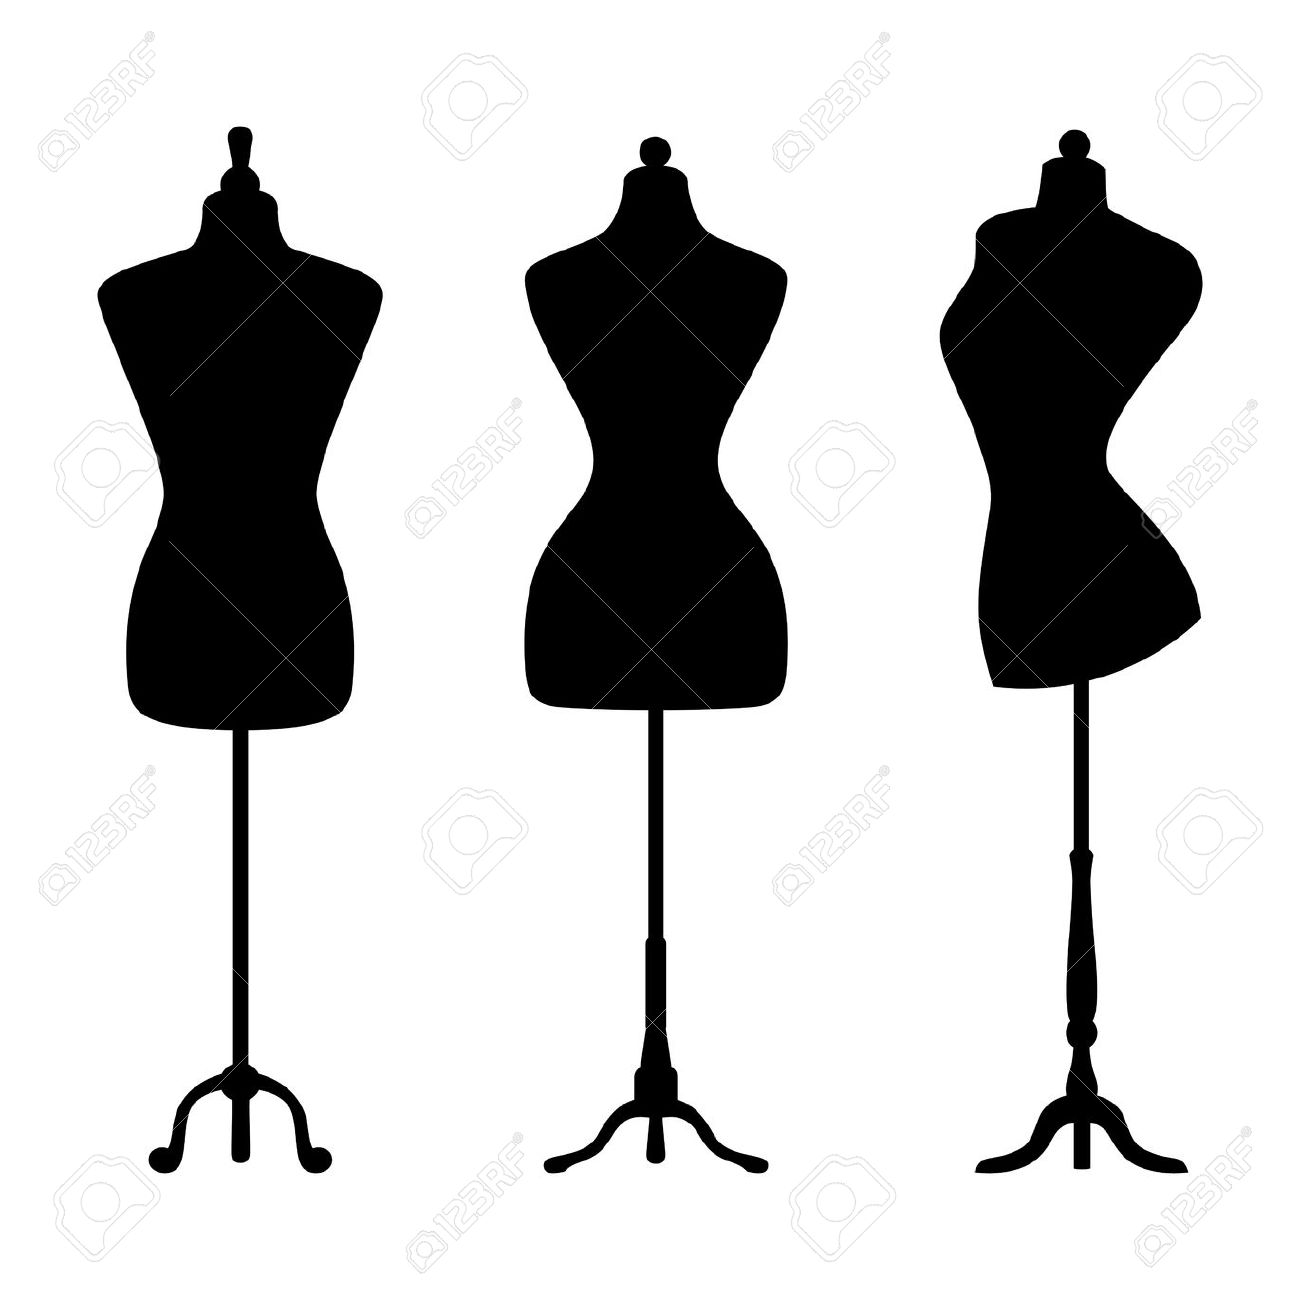 mannequins clipart clipground. Black Bedroom Furniture Sets. Home Design Ideas